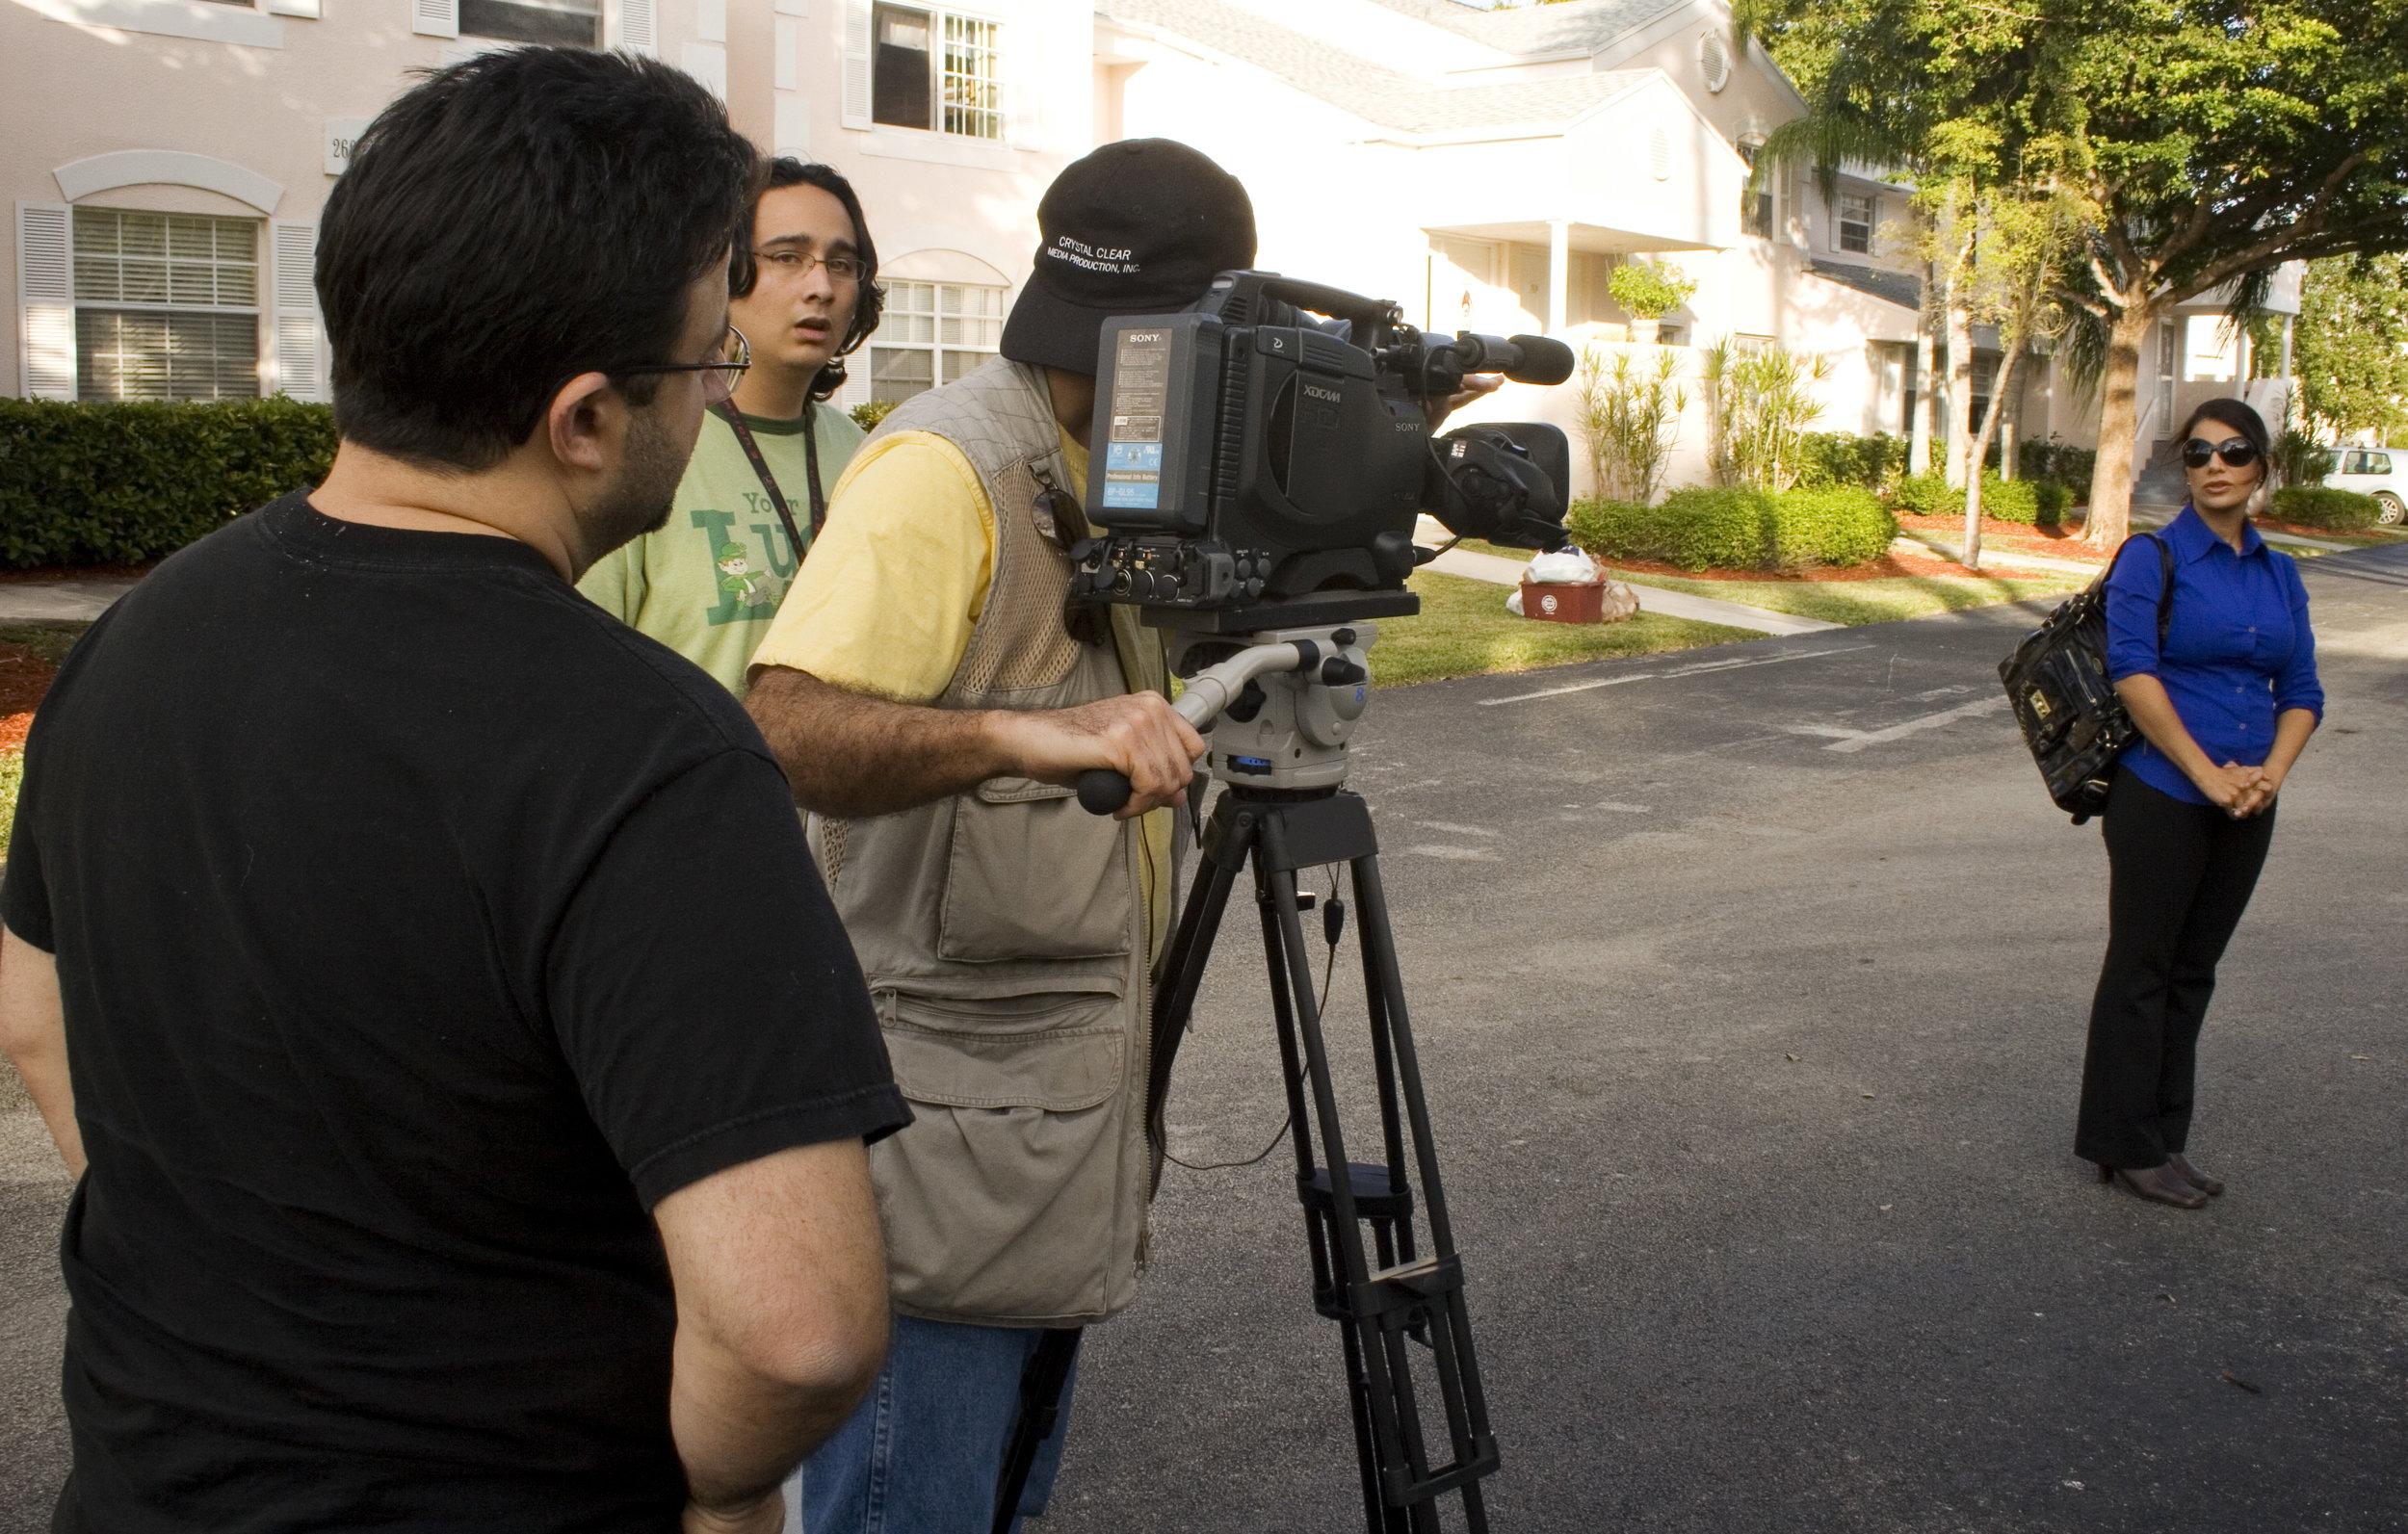 PRODUCTION STILL 5.jpg